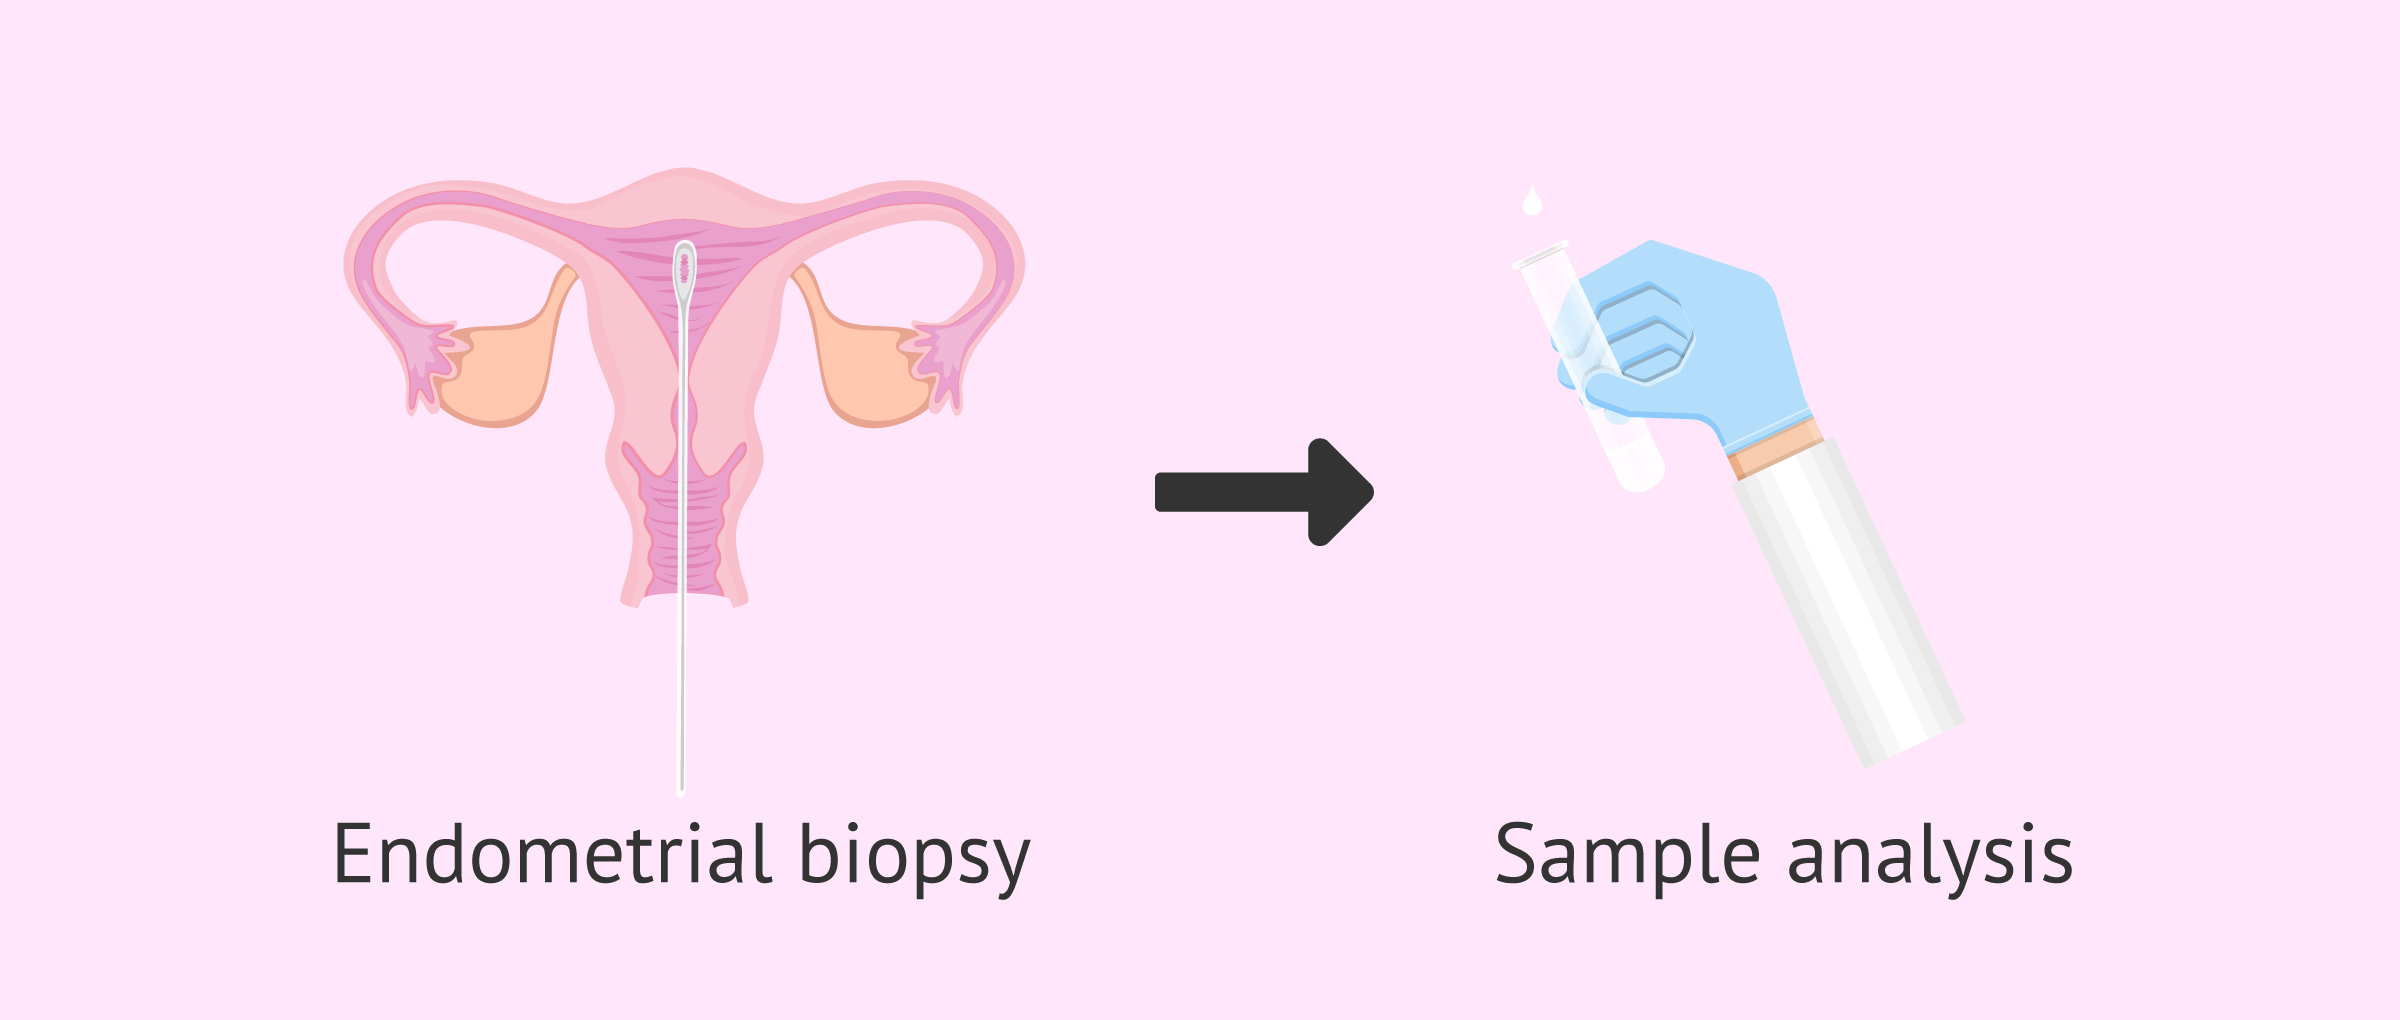 Endometrial biopsy technique